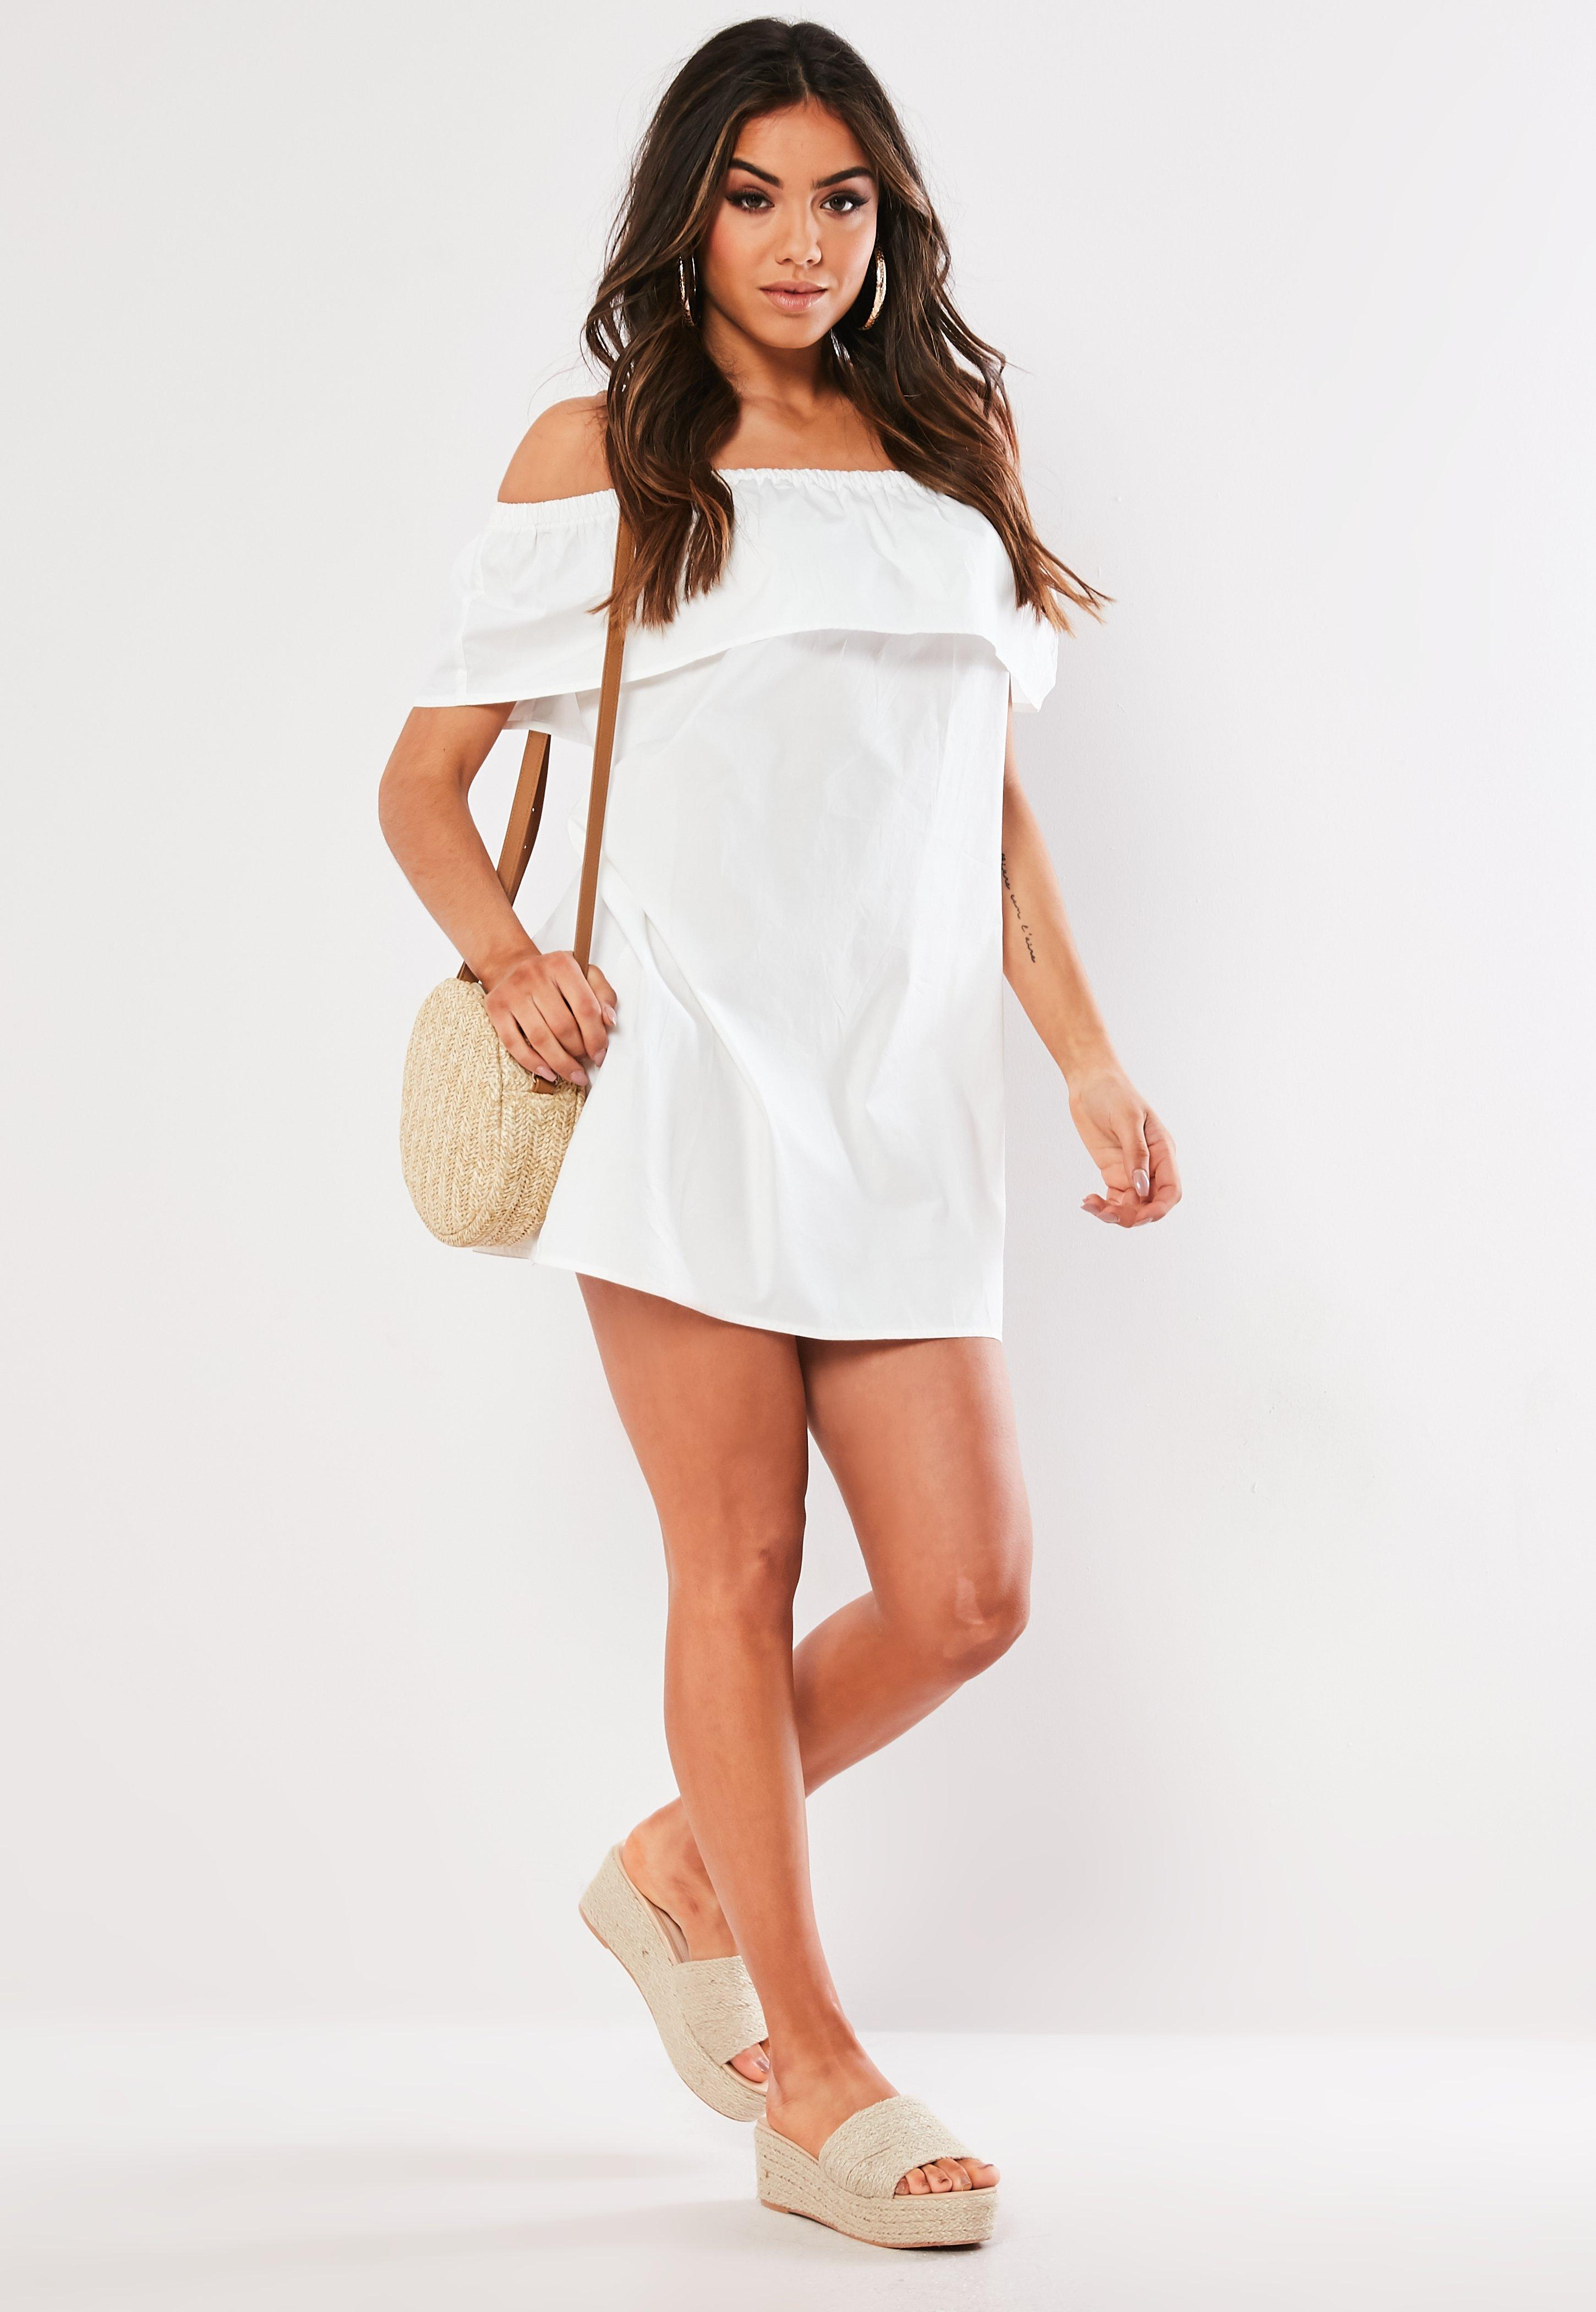 583a291e541 White Dresses - Missguided